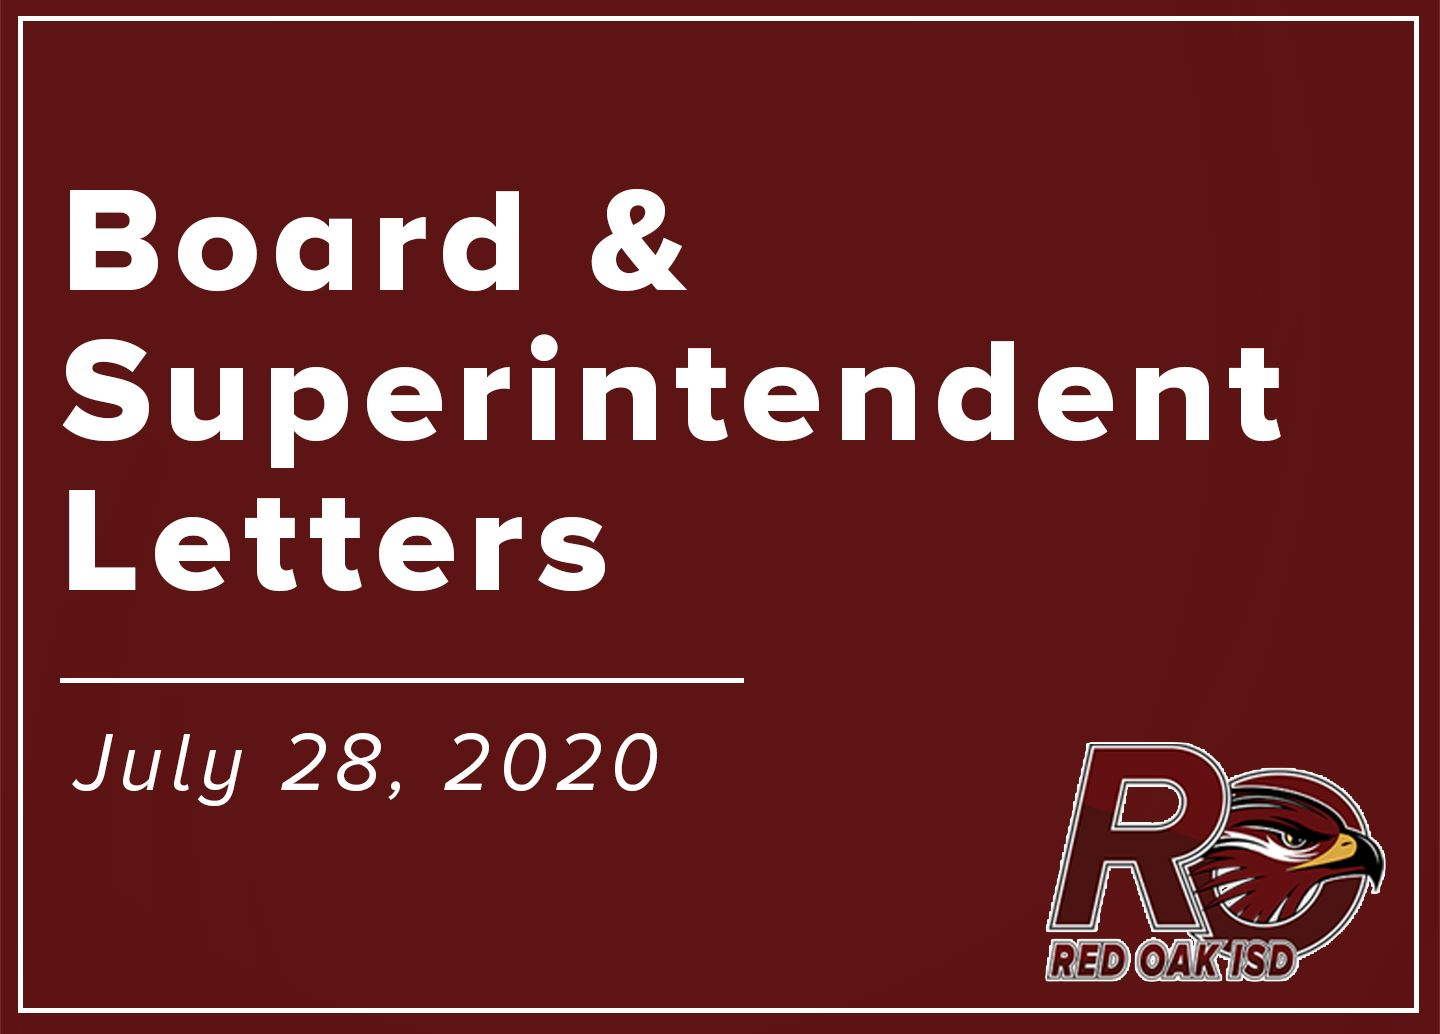 Board and Superintendent Letters on July 28, 2020